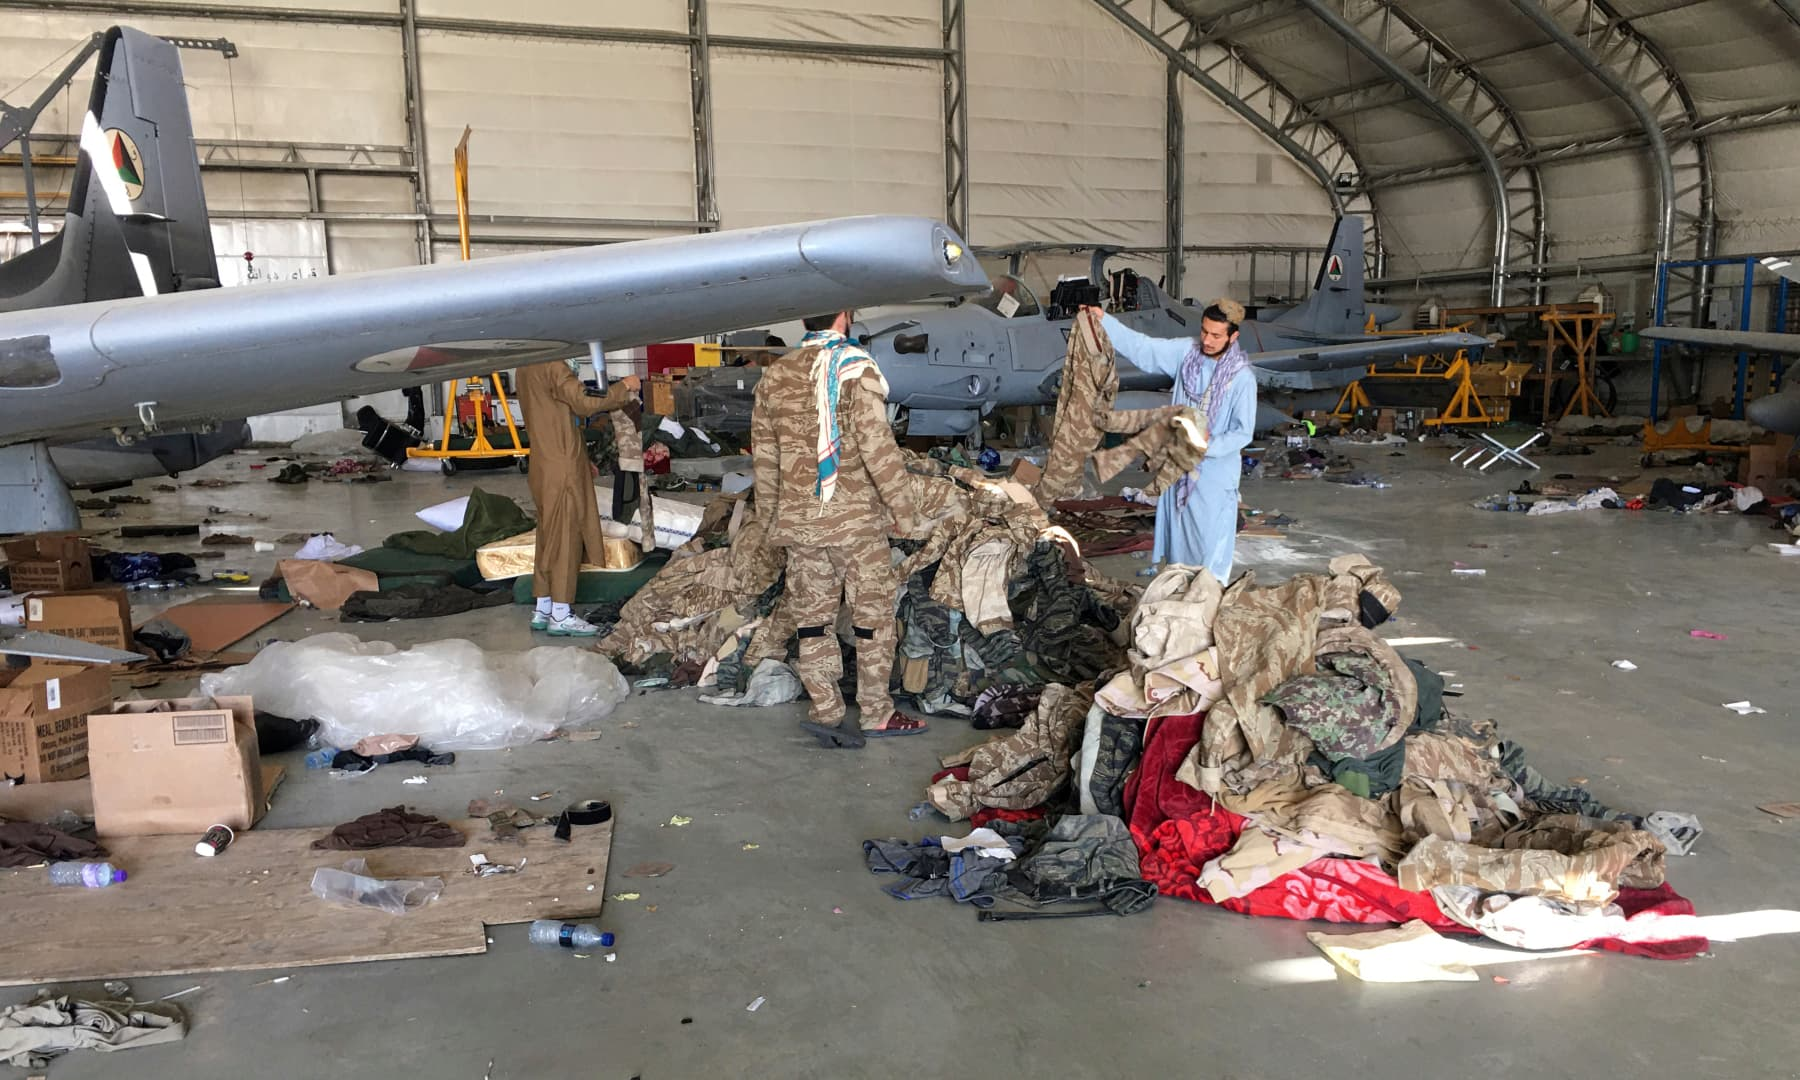 Taliban fighters collect military clothes near damaged Afghan military aircraft after the Taliban's takeover inside the Hamid Karzai International Airport in Kabul, Afghanistan on September 5, 2021. — AP